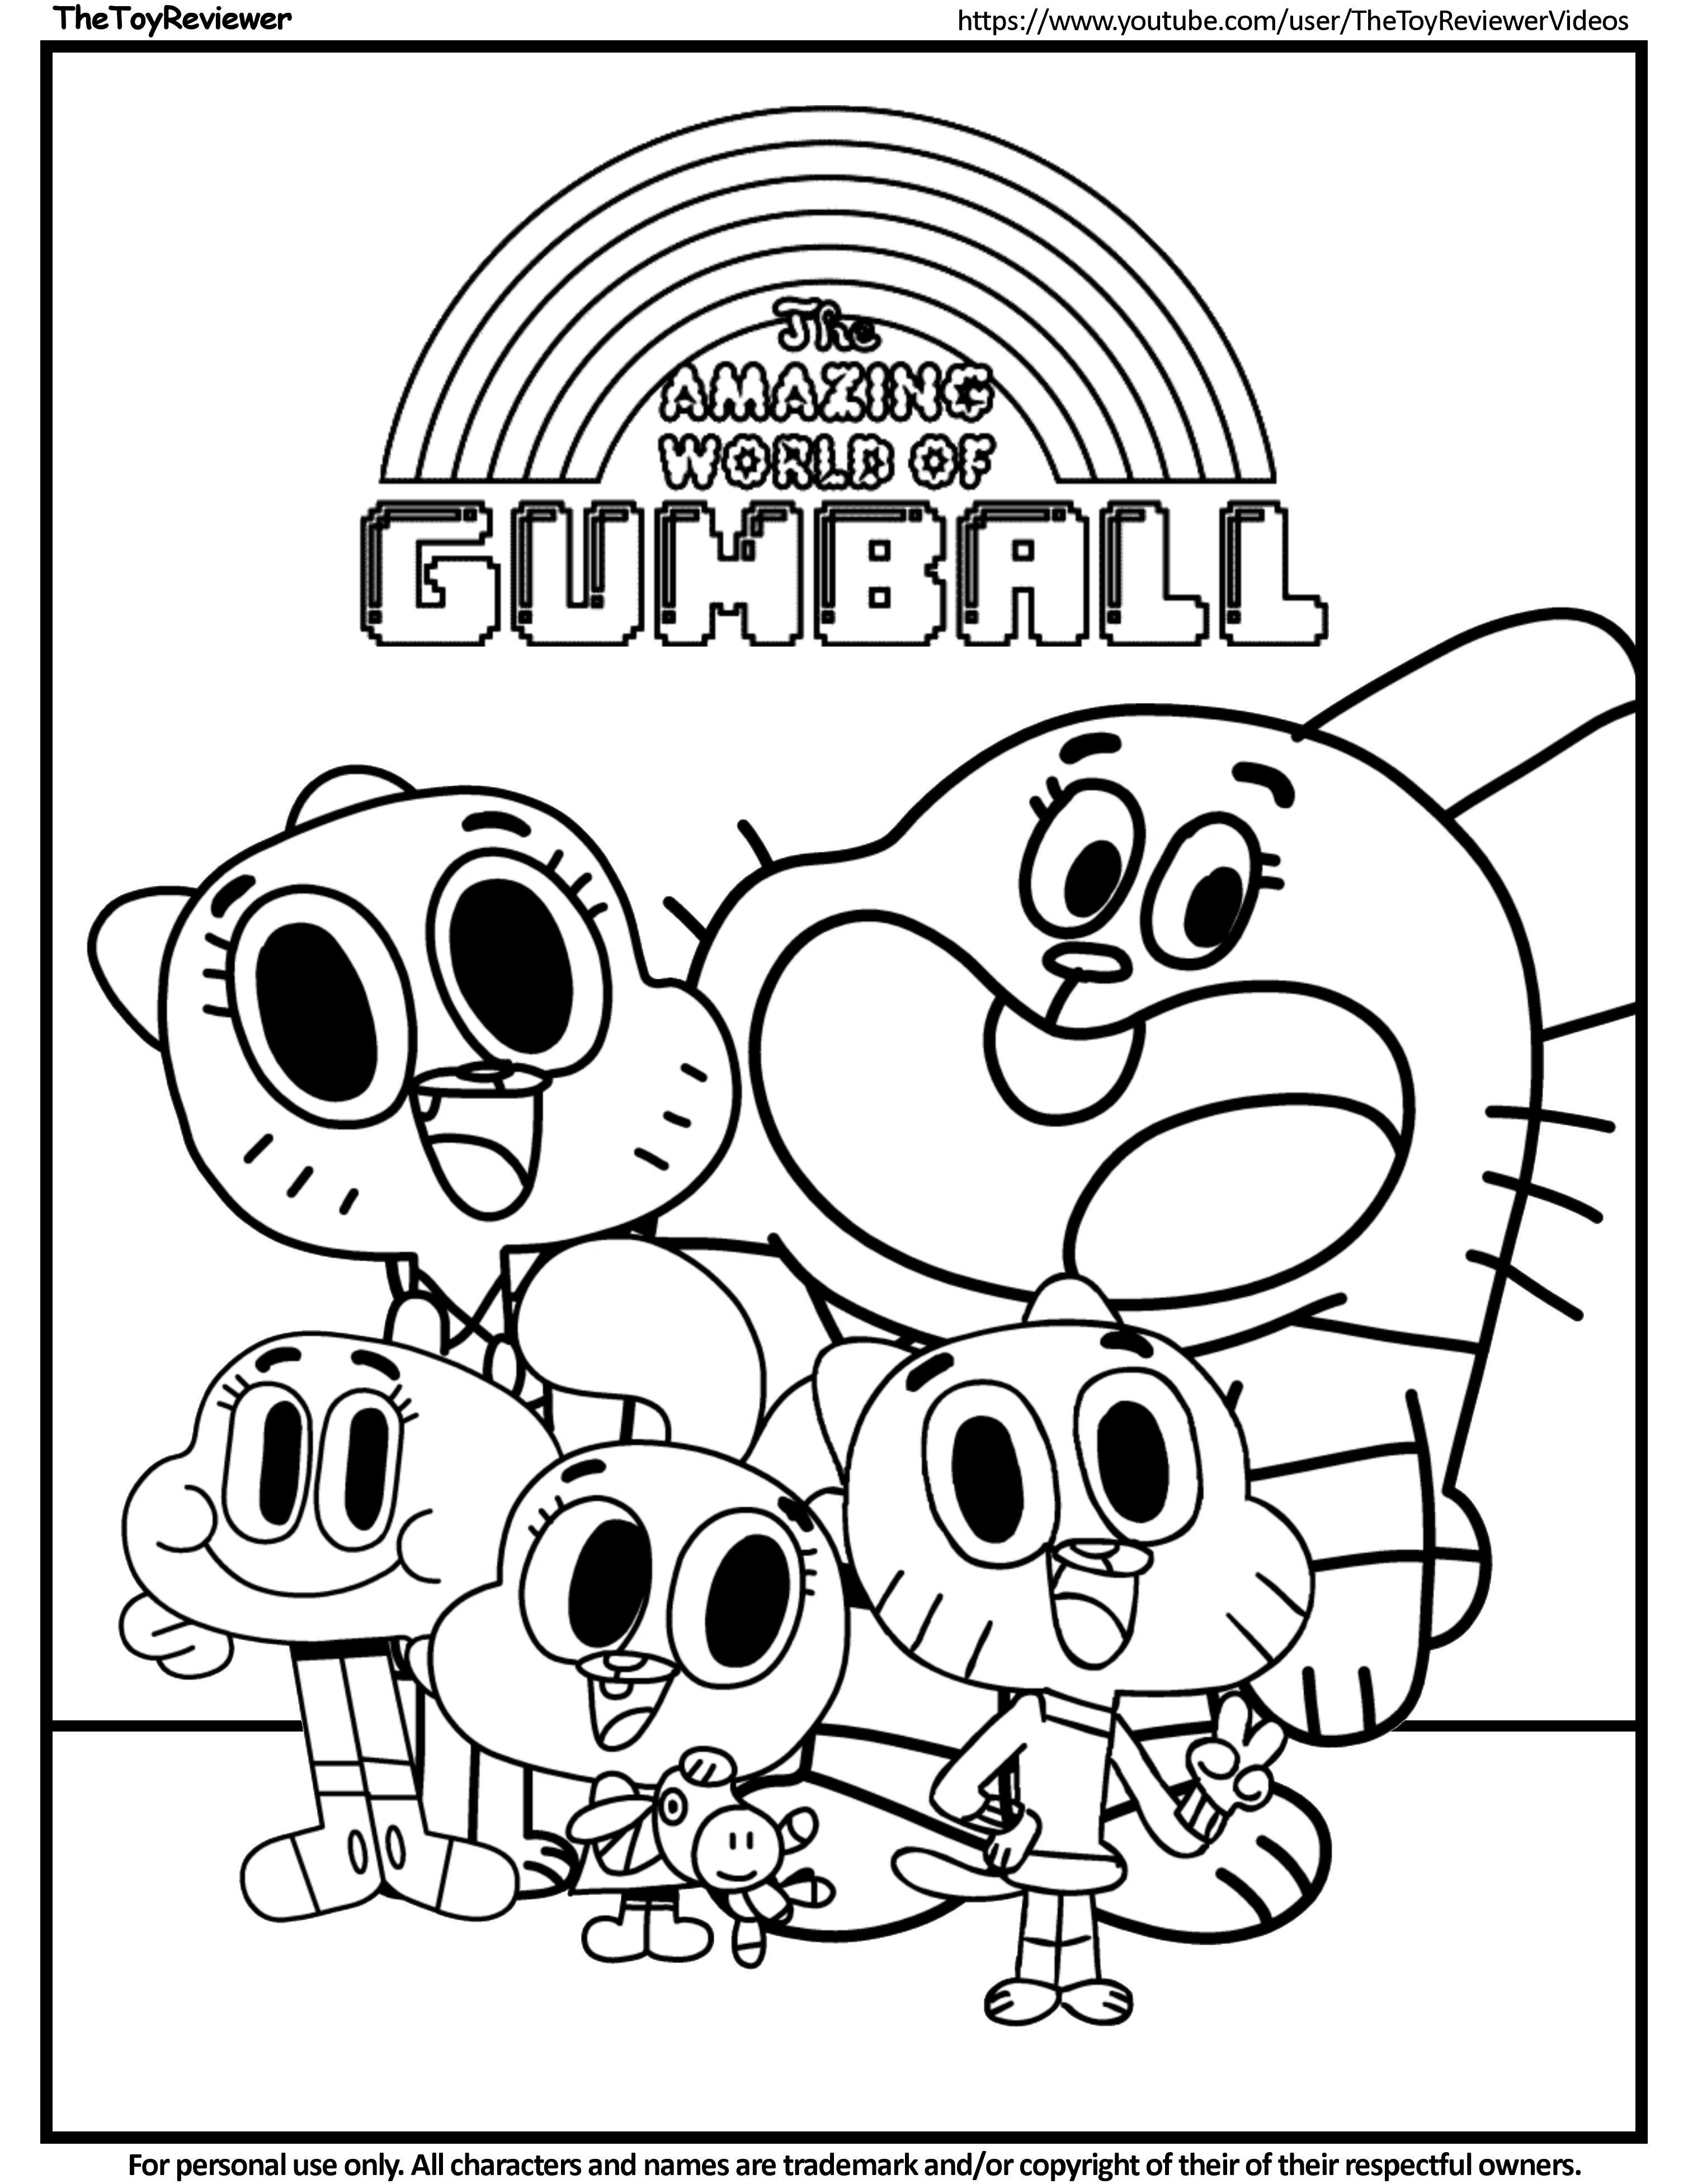 Gumball Cartoon Network Coloring Pages In 2020 The Amazing World